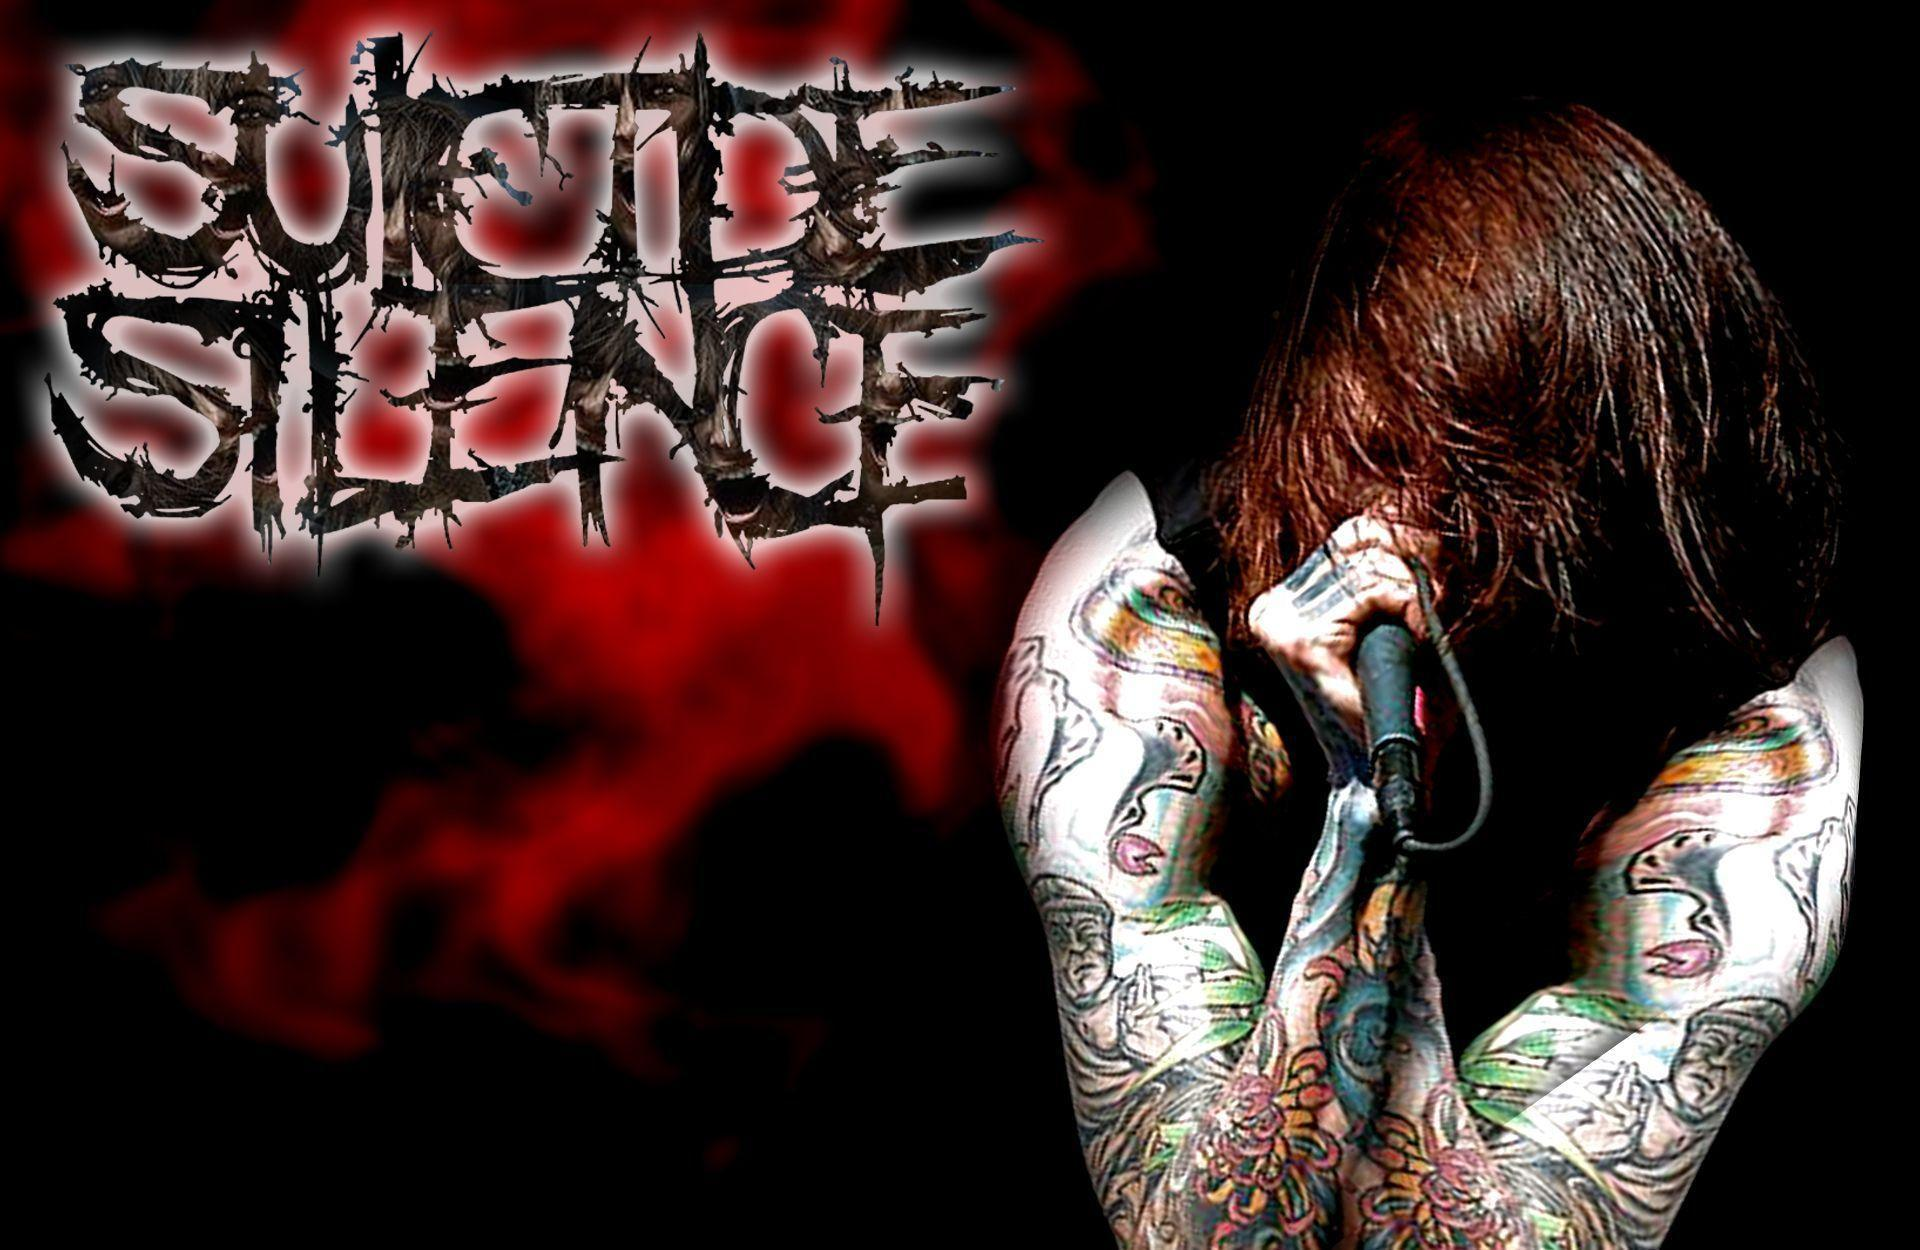 Image For > Suicide Silence Rip Mitch Lucker Wallpapers